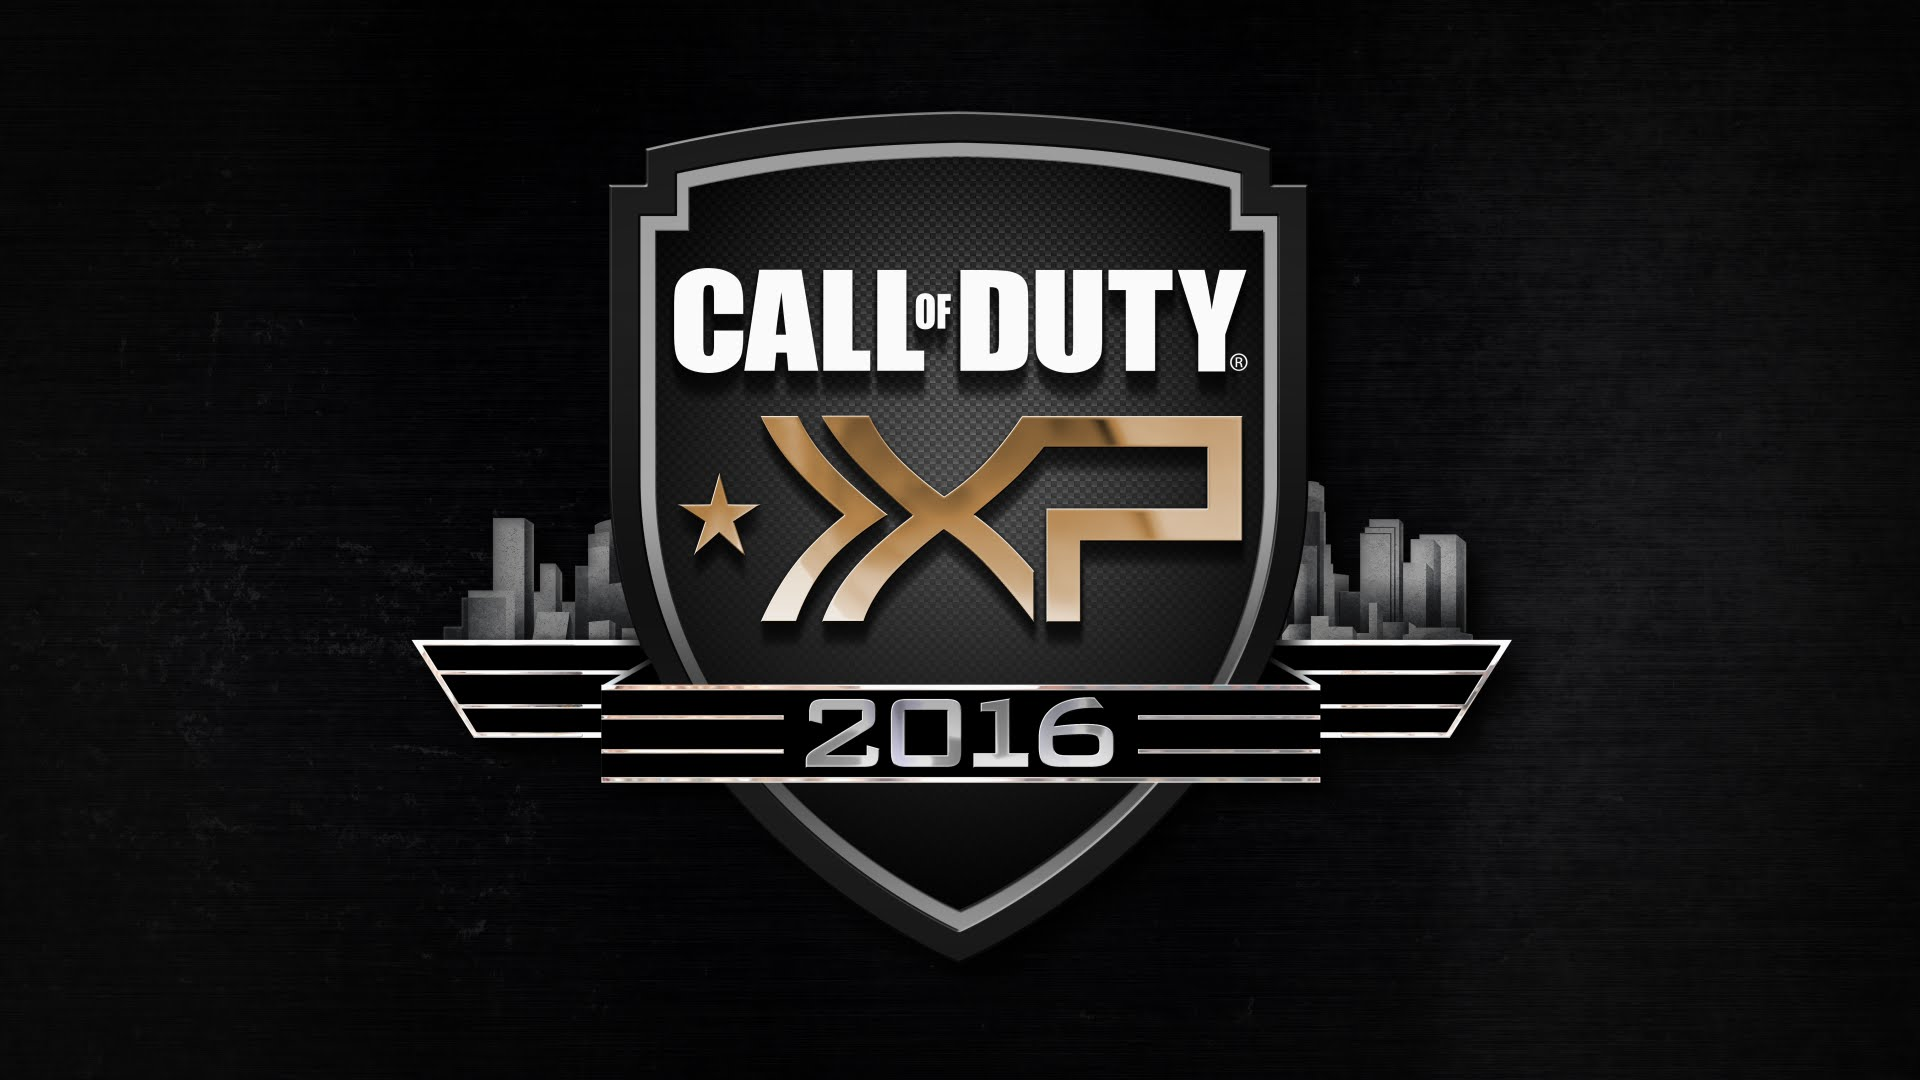 Official-Call-of-Duty®-XP-2016-Announce-Trailer